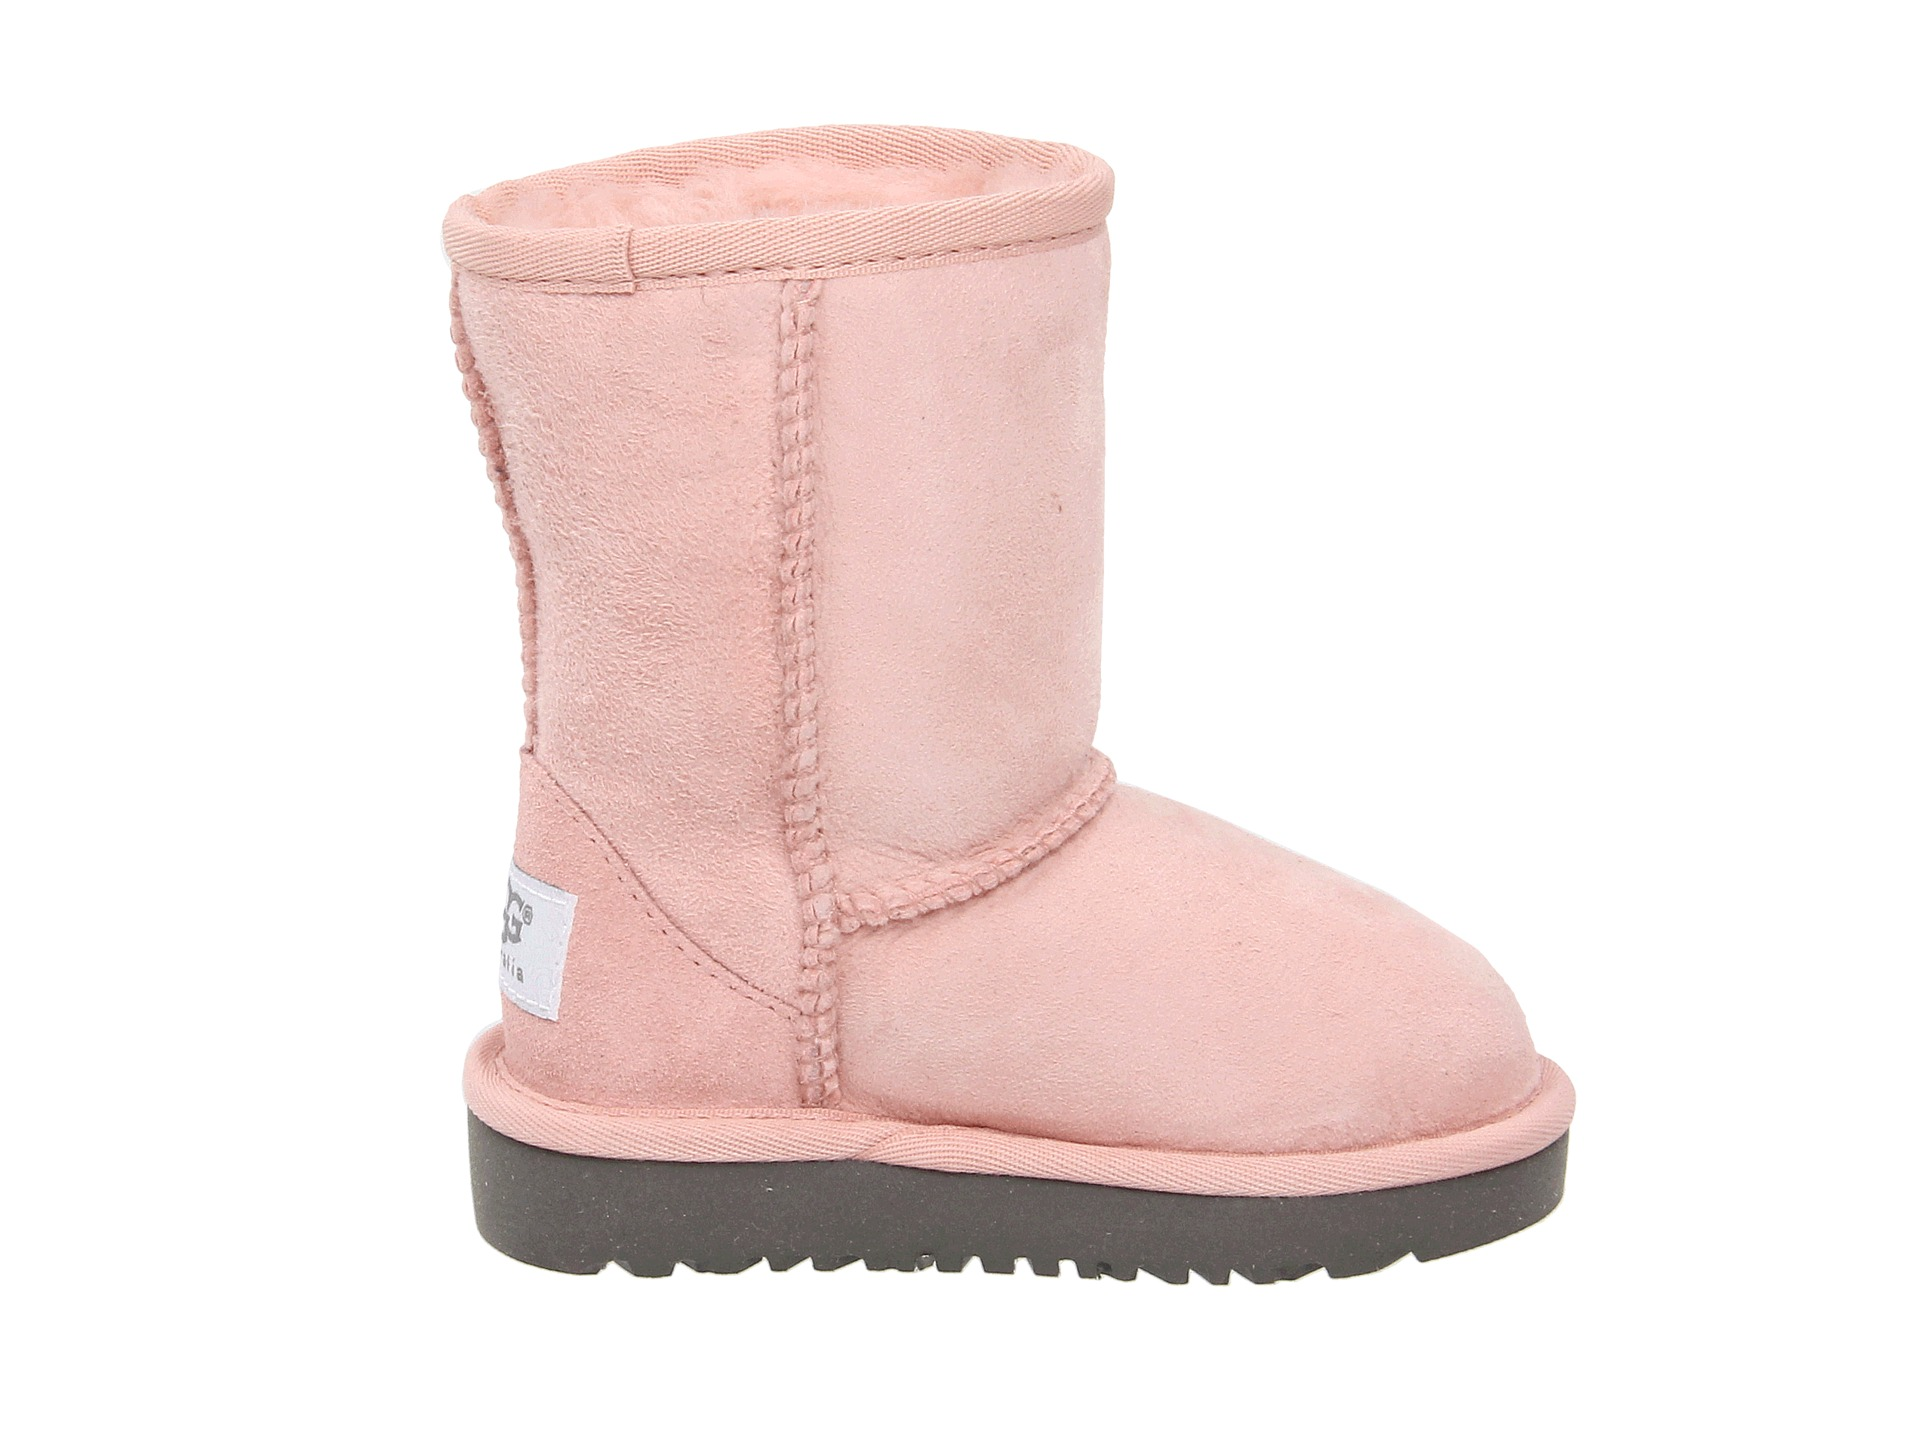 fake uggs images